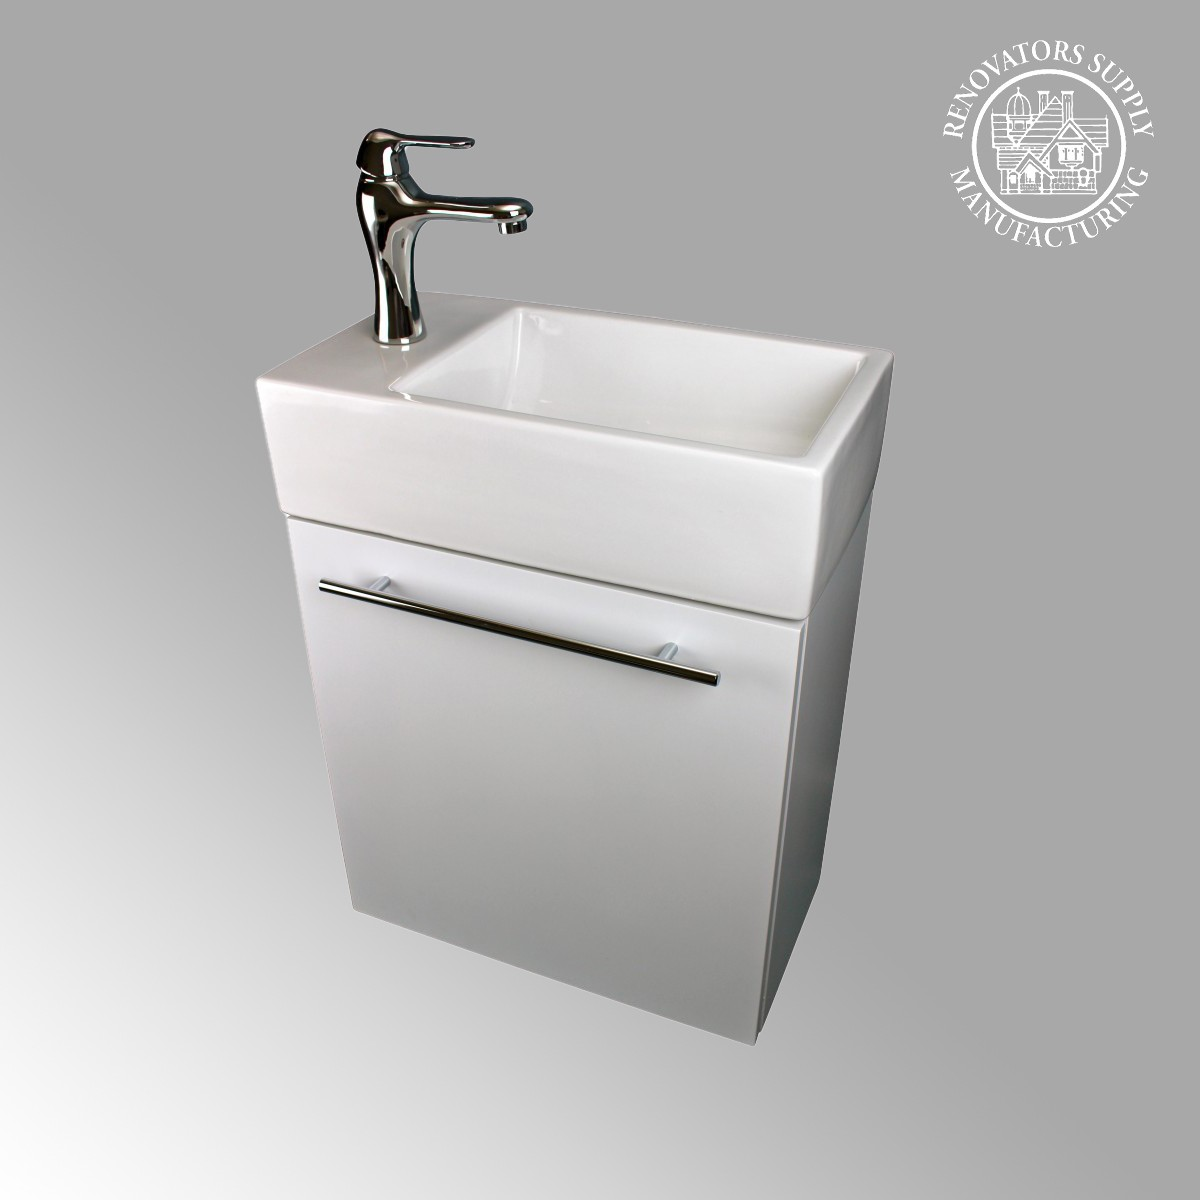 17 Small White Bathroom Vanity Wall Mount Cabinet Sink Faucet Combo And Drain